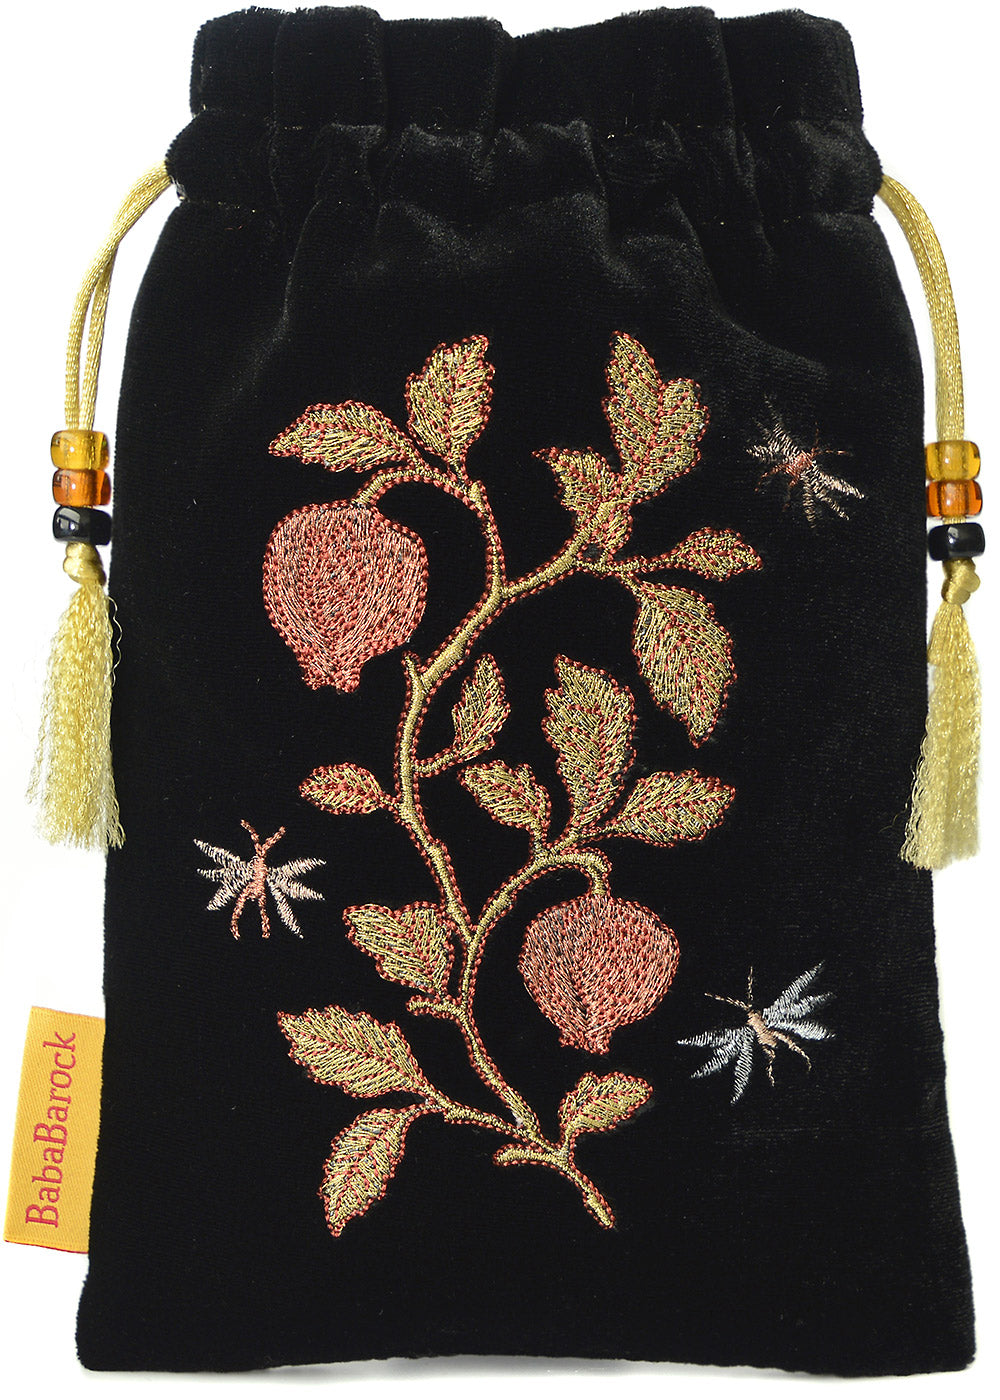 embroidered tarot bag, embroidered tarot pouch, metallic embroidery, silk velvet, embroidered pouch, drawstring, insect embroidery design